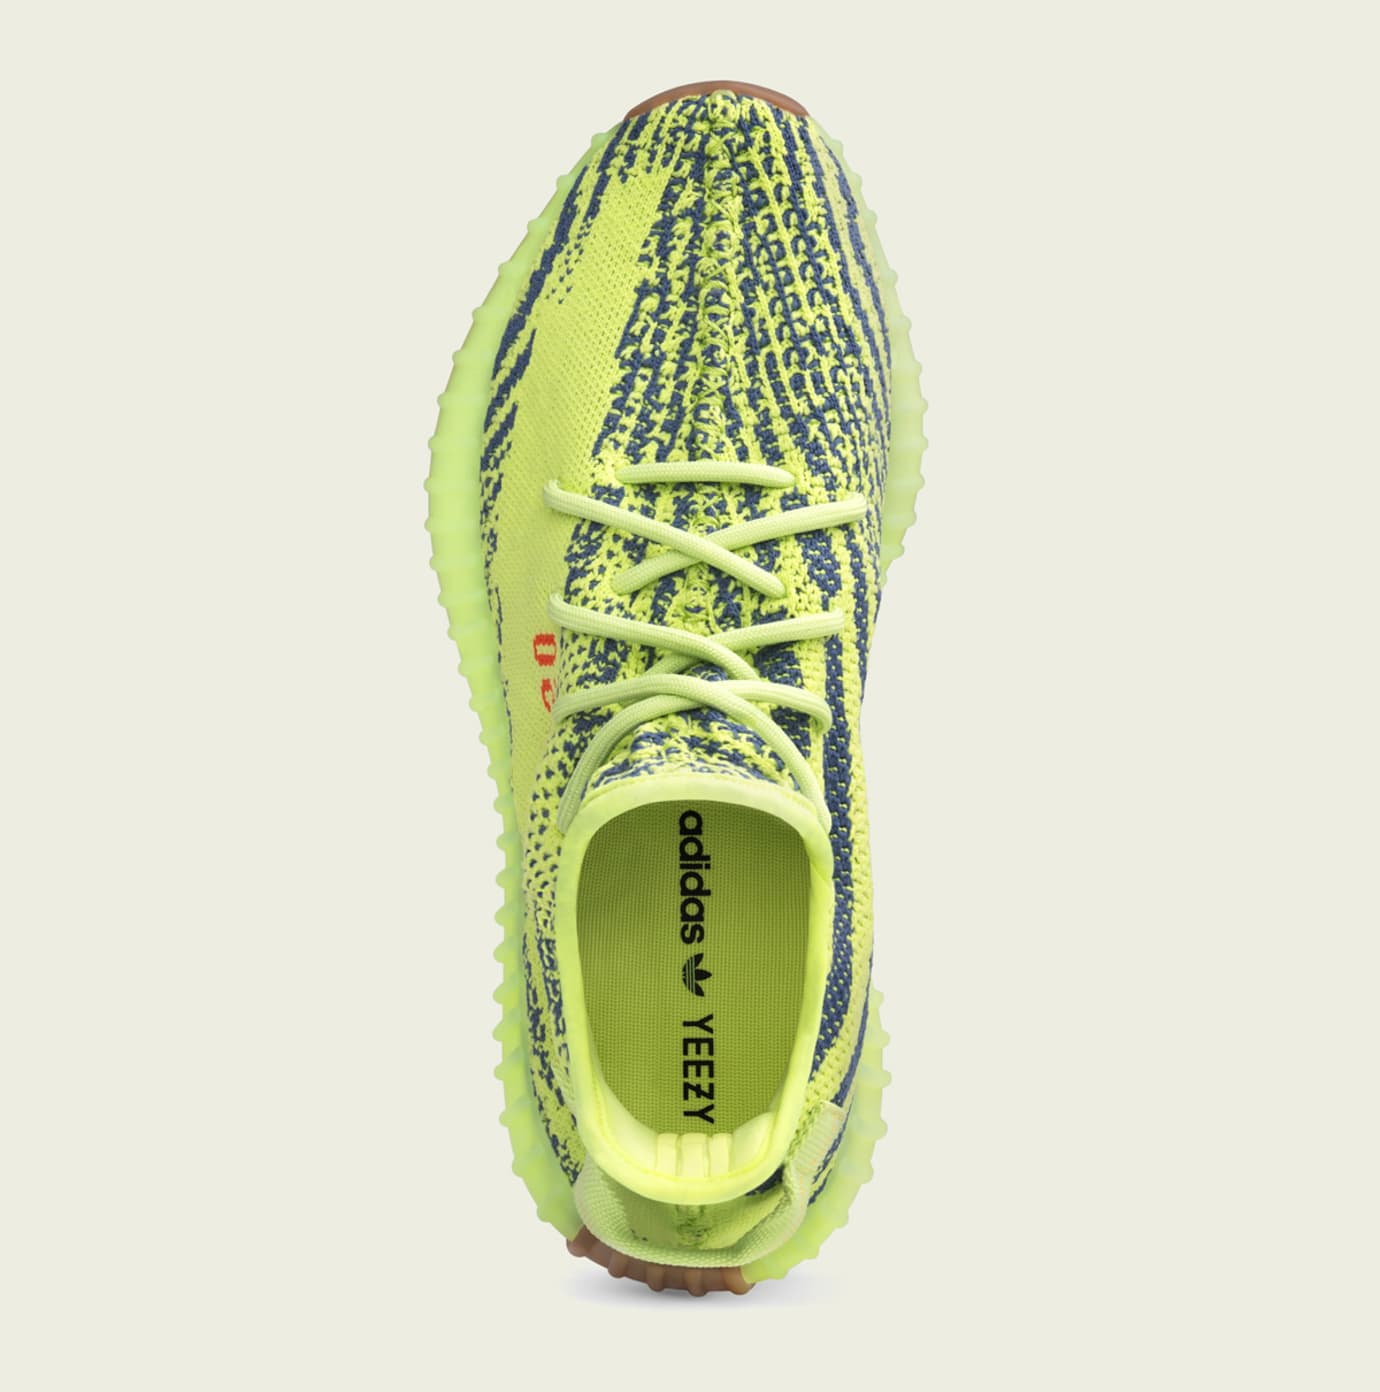 690db51ac70 Adidas Yeezy Boost 350 V2 Semi Frozen Yellow Beluga 2 Blue Tint ...